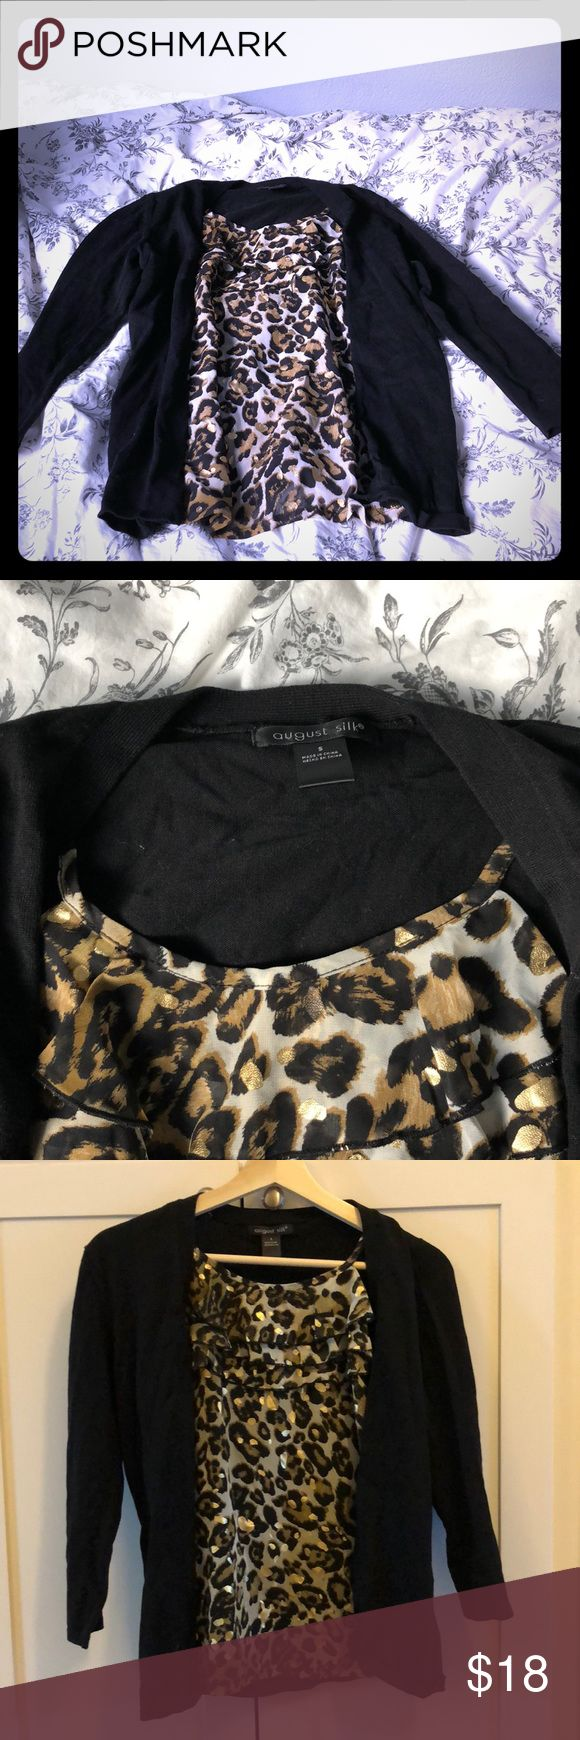 Unique cardigan with Built in sheer cami Barely Worn in great condition. Has built in Animal print cami! august silk Tops